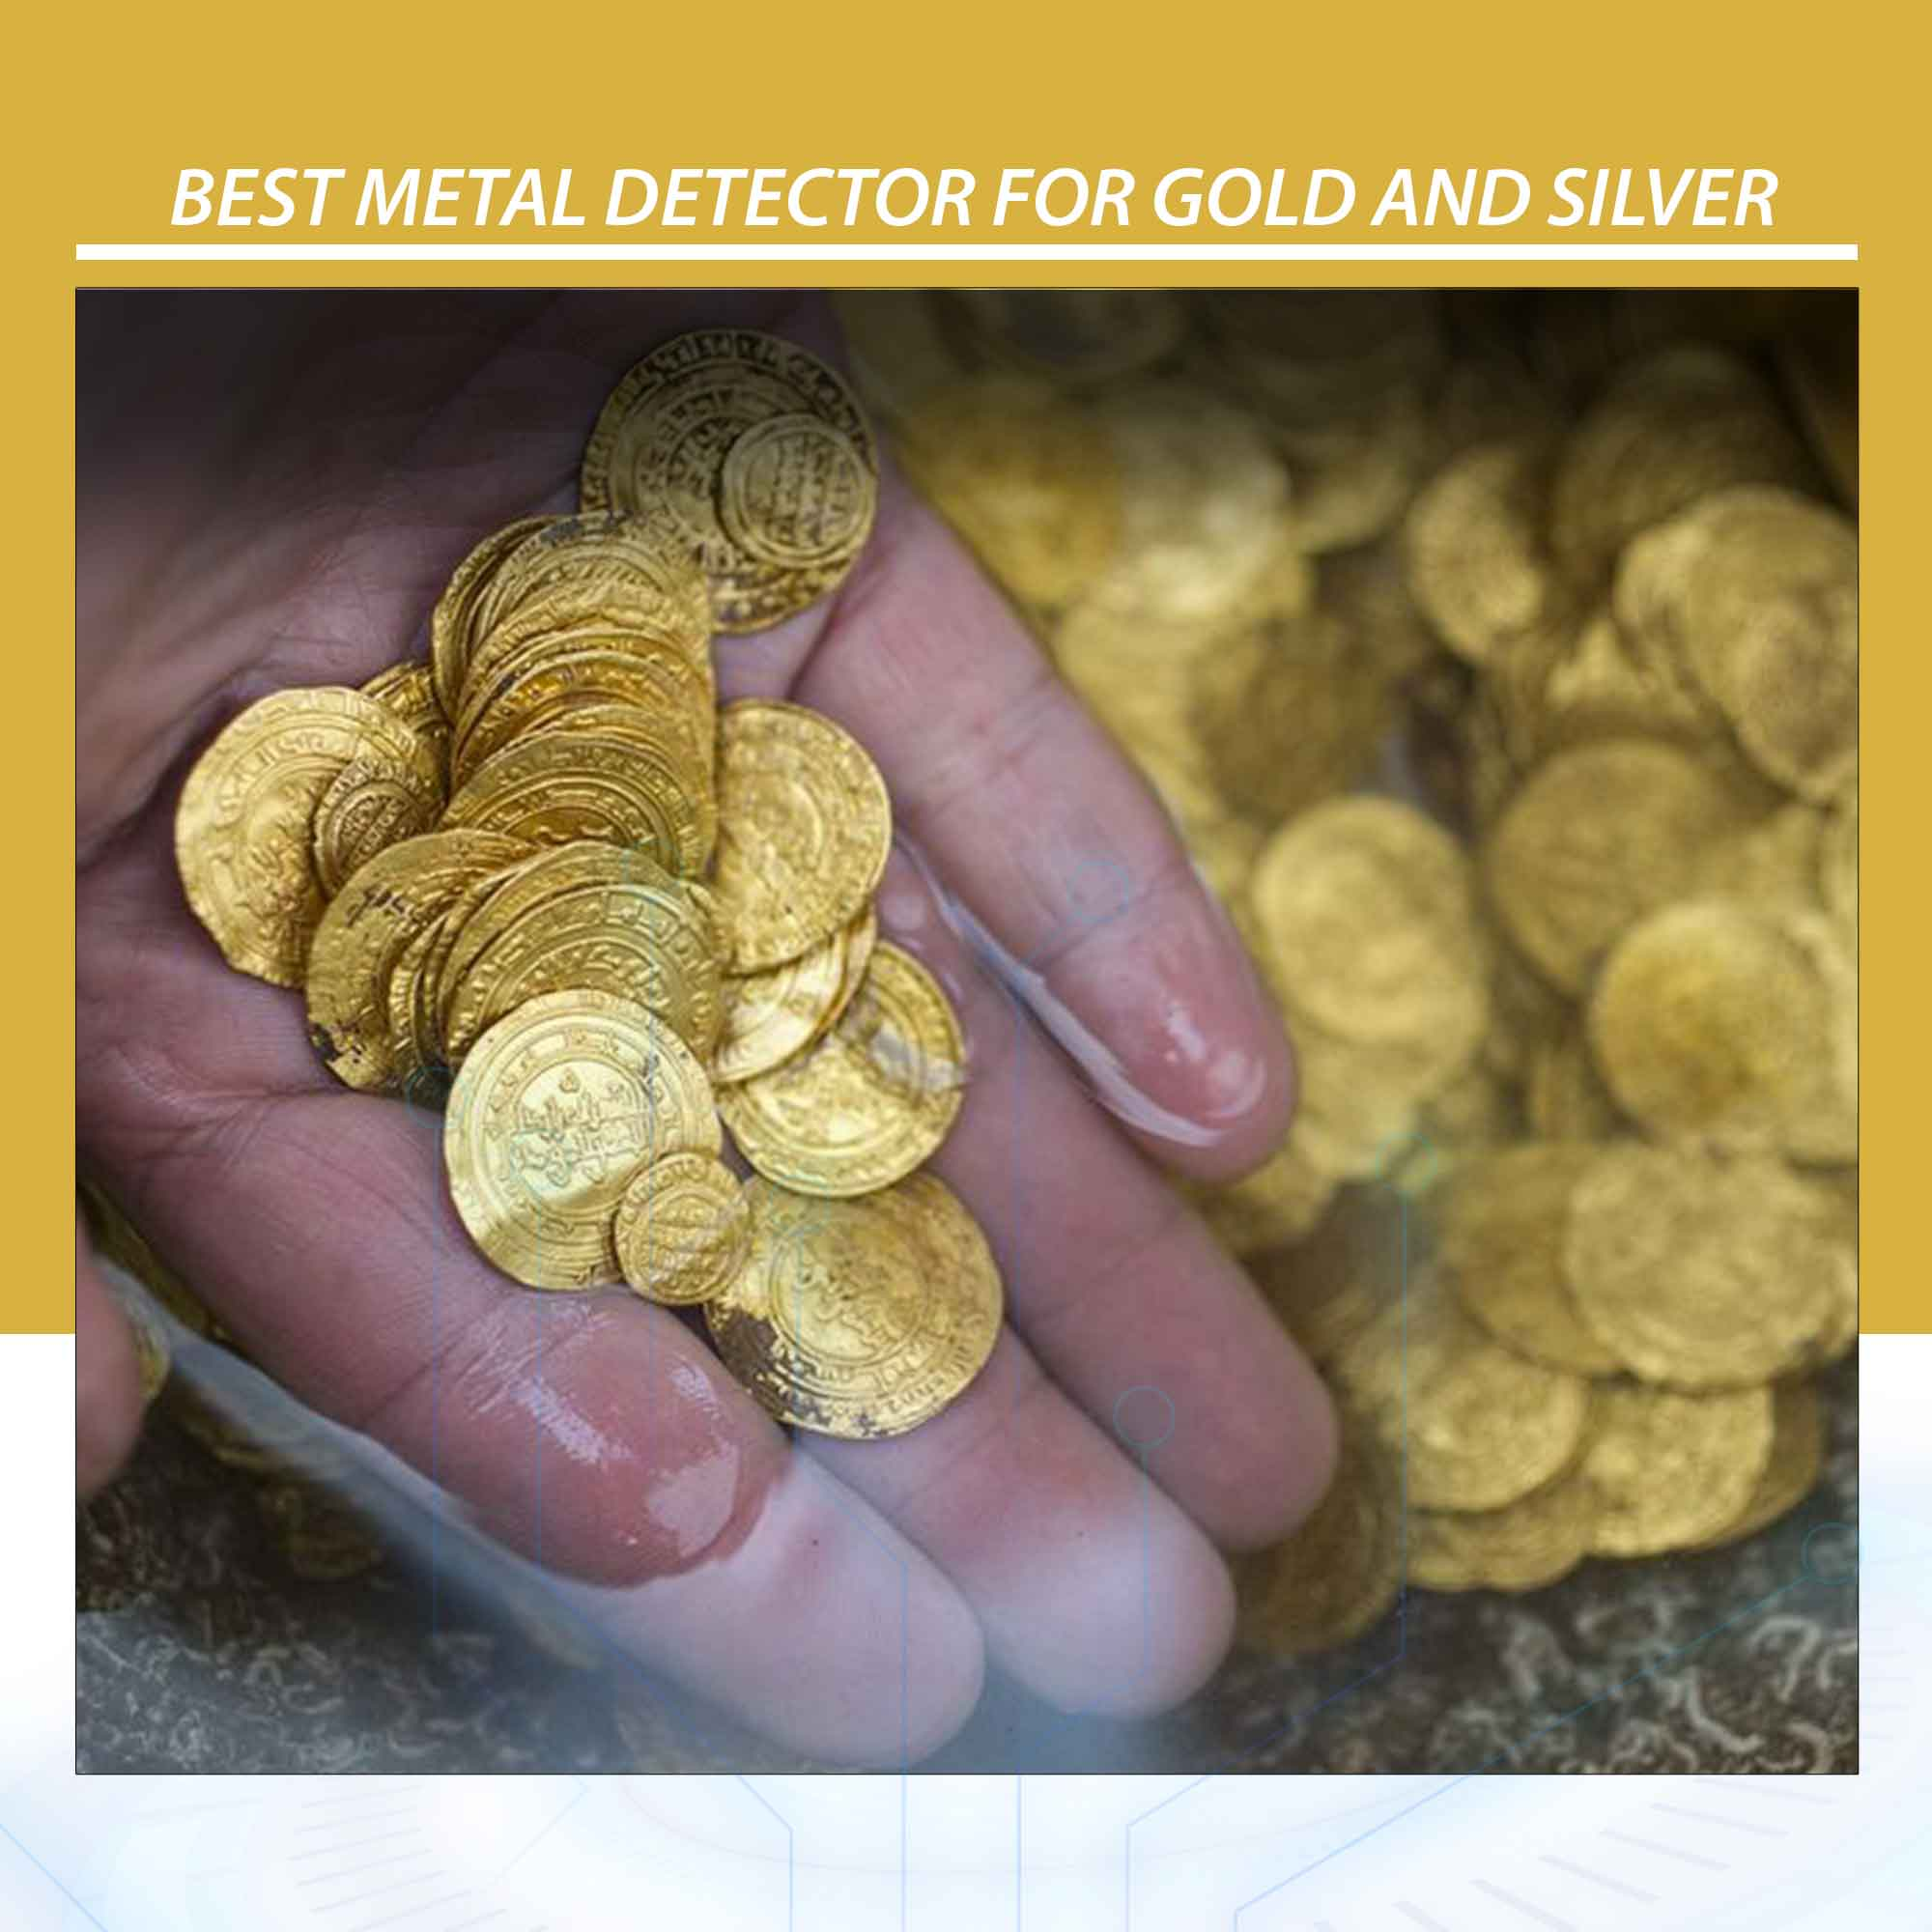 Best Metal Detector for Gold and Silver